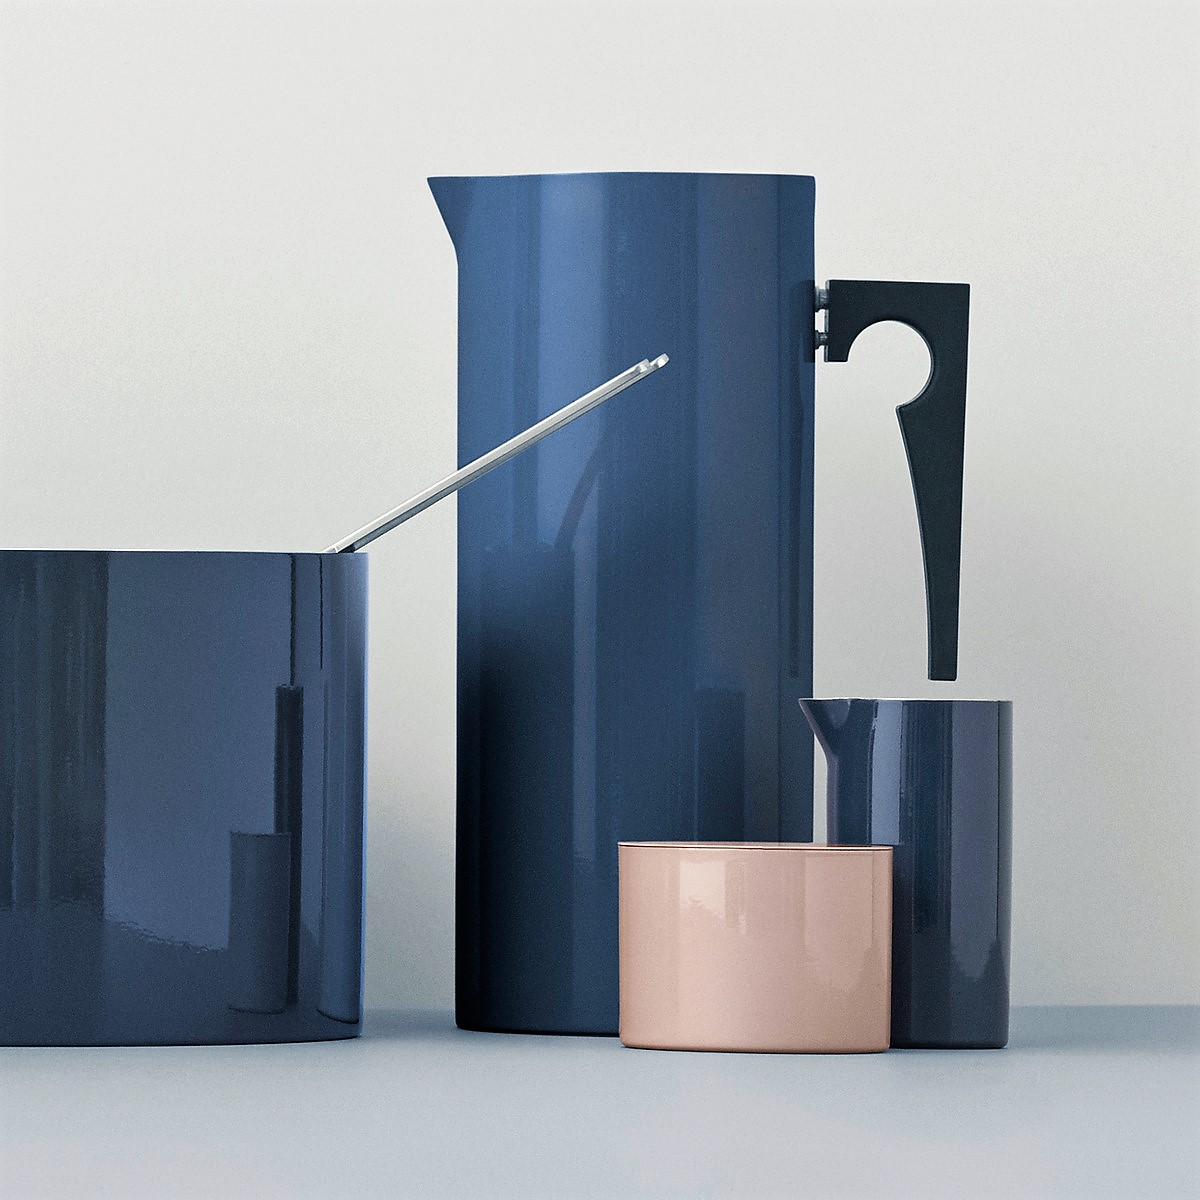 Stelton - Kitchenware Cylinda Ice Stopper, salad bowl and milk jug in ocean blue. Sugar bowl in powder